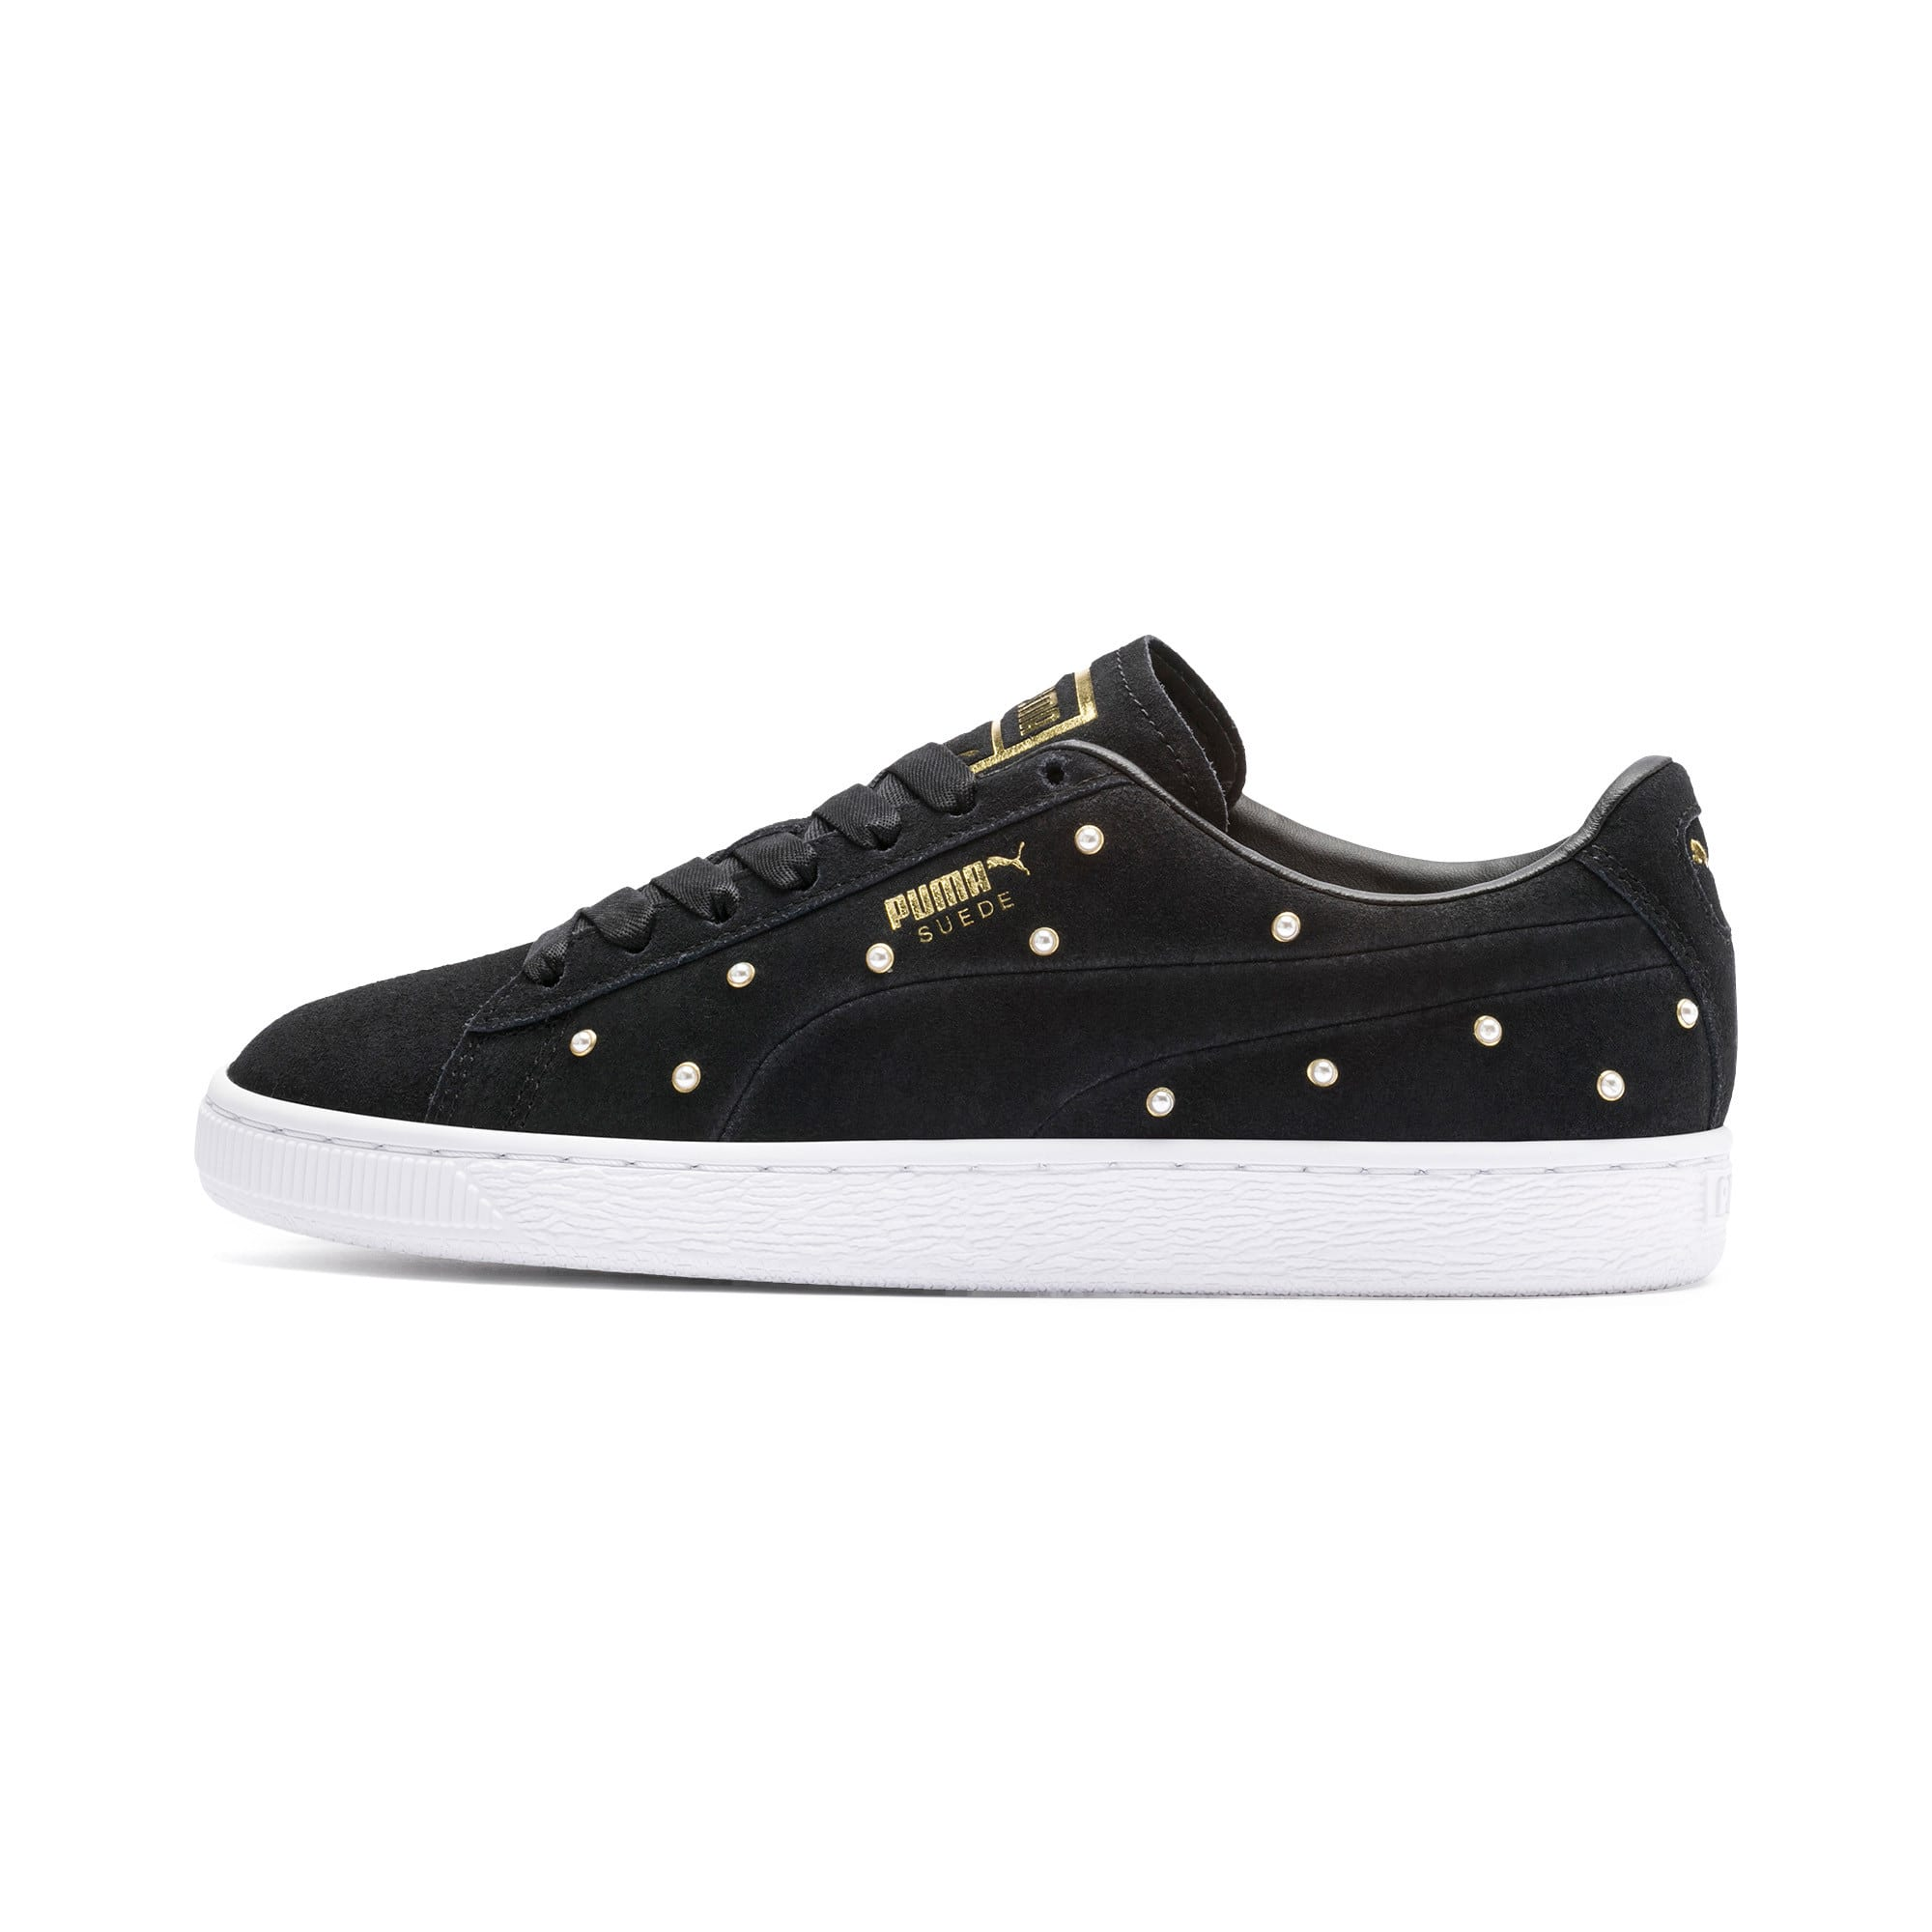 Thumbnail 1 of Suede Pearl Studs Women's Sneakers, Puma Black-Puma Team Gold, medium